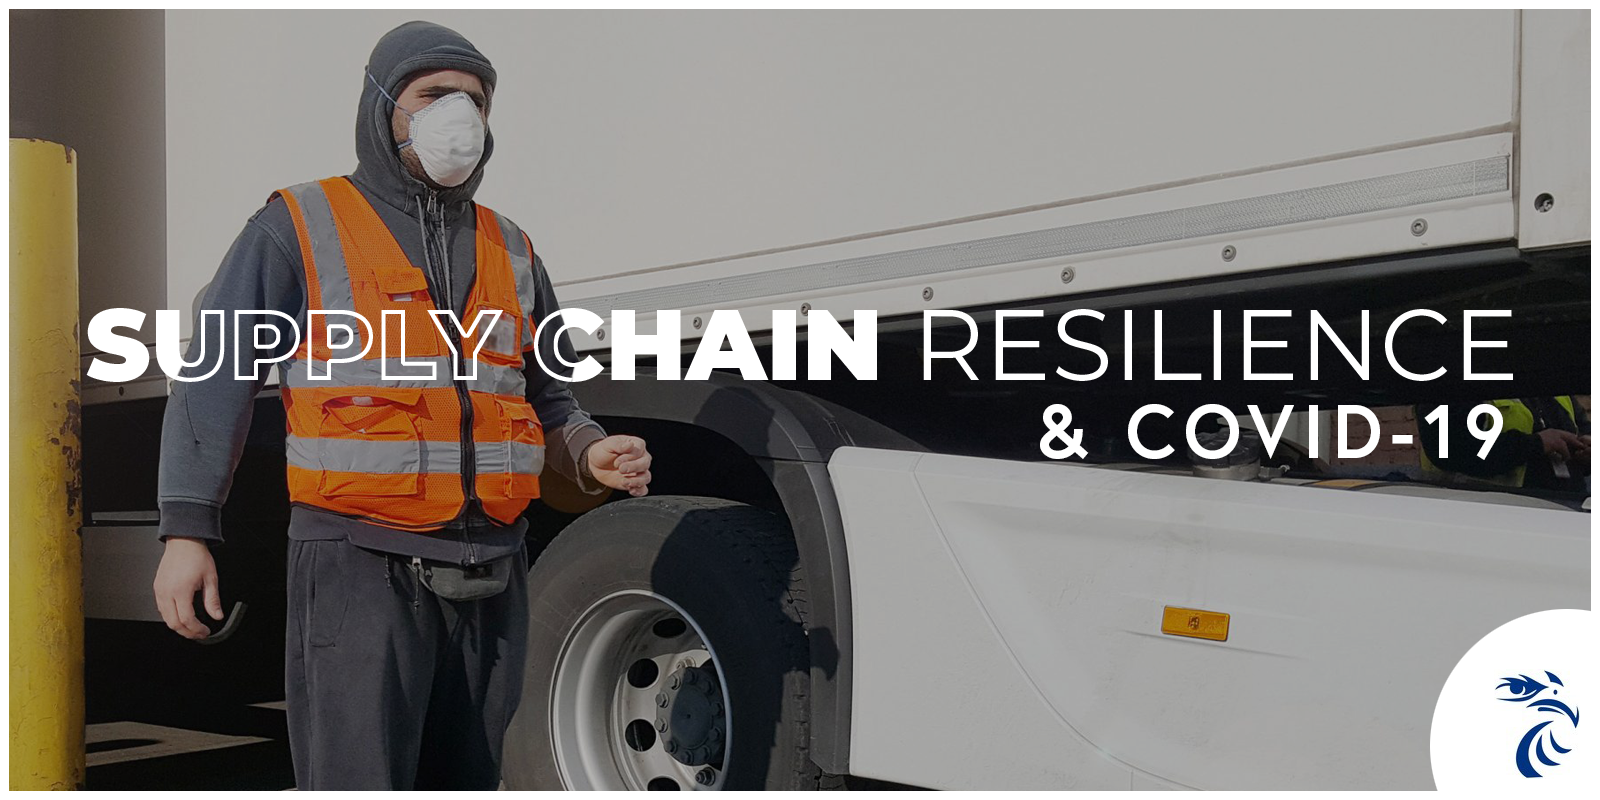 Truck and driver wearing a mask with tagline: Supply Chain Resilience & COVID-19